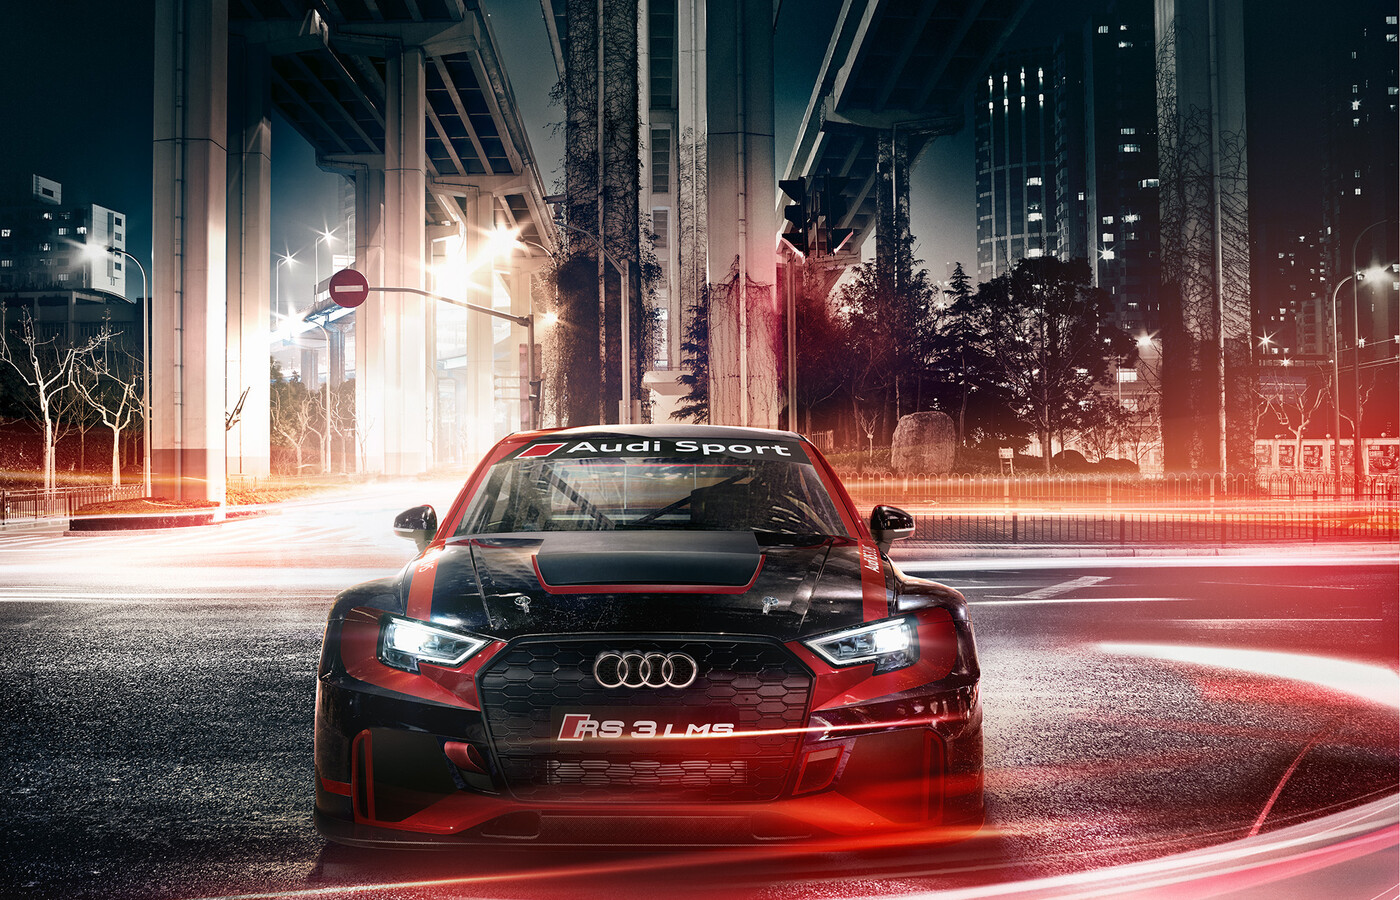 1400x900 Audi Rs 3 1400x900 Resolution Hd 4k Wallpapers Images Backgrounds Photos And Pictures